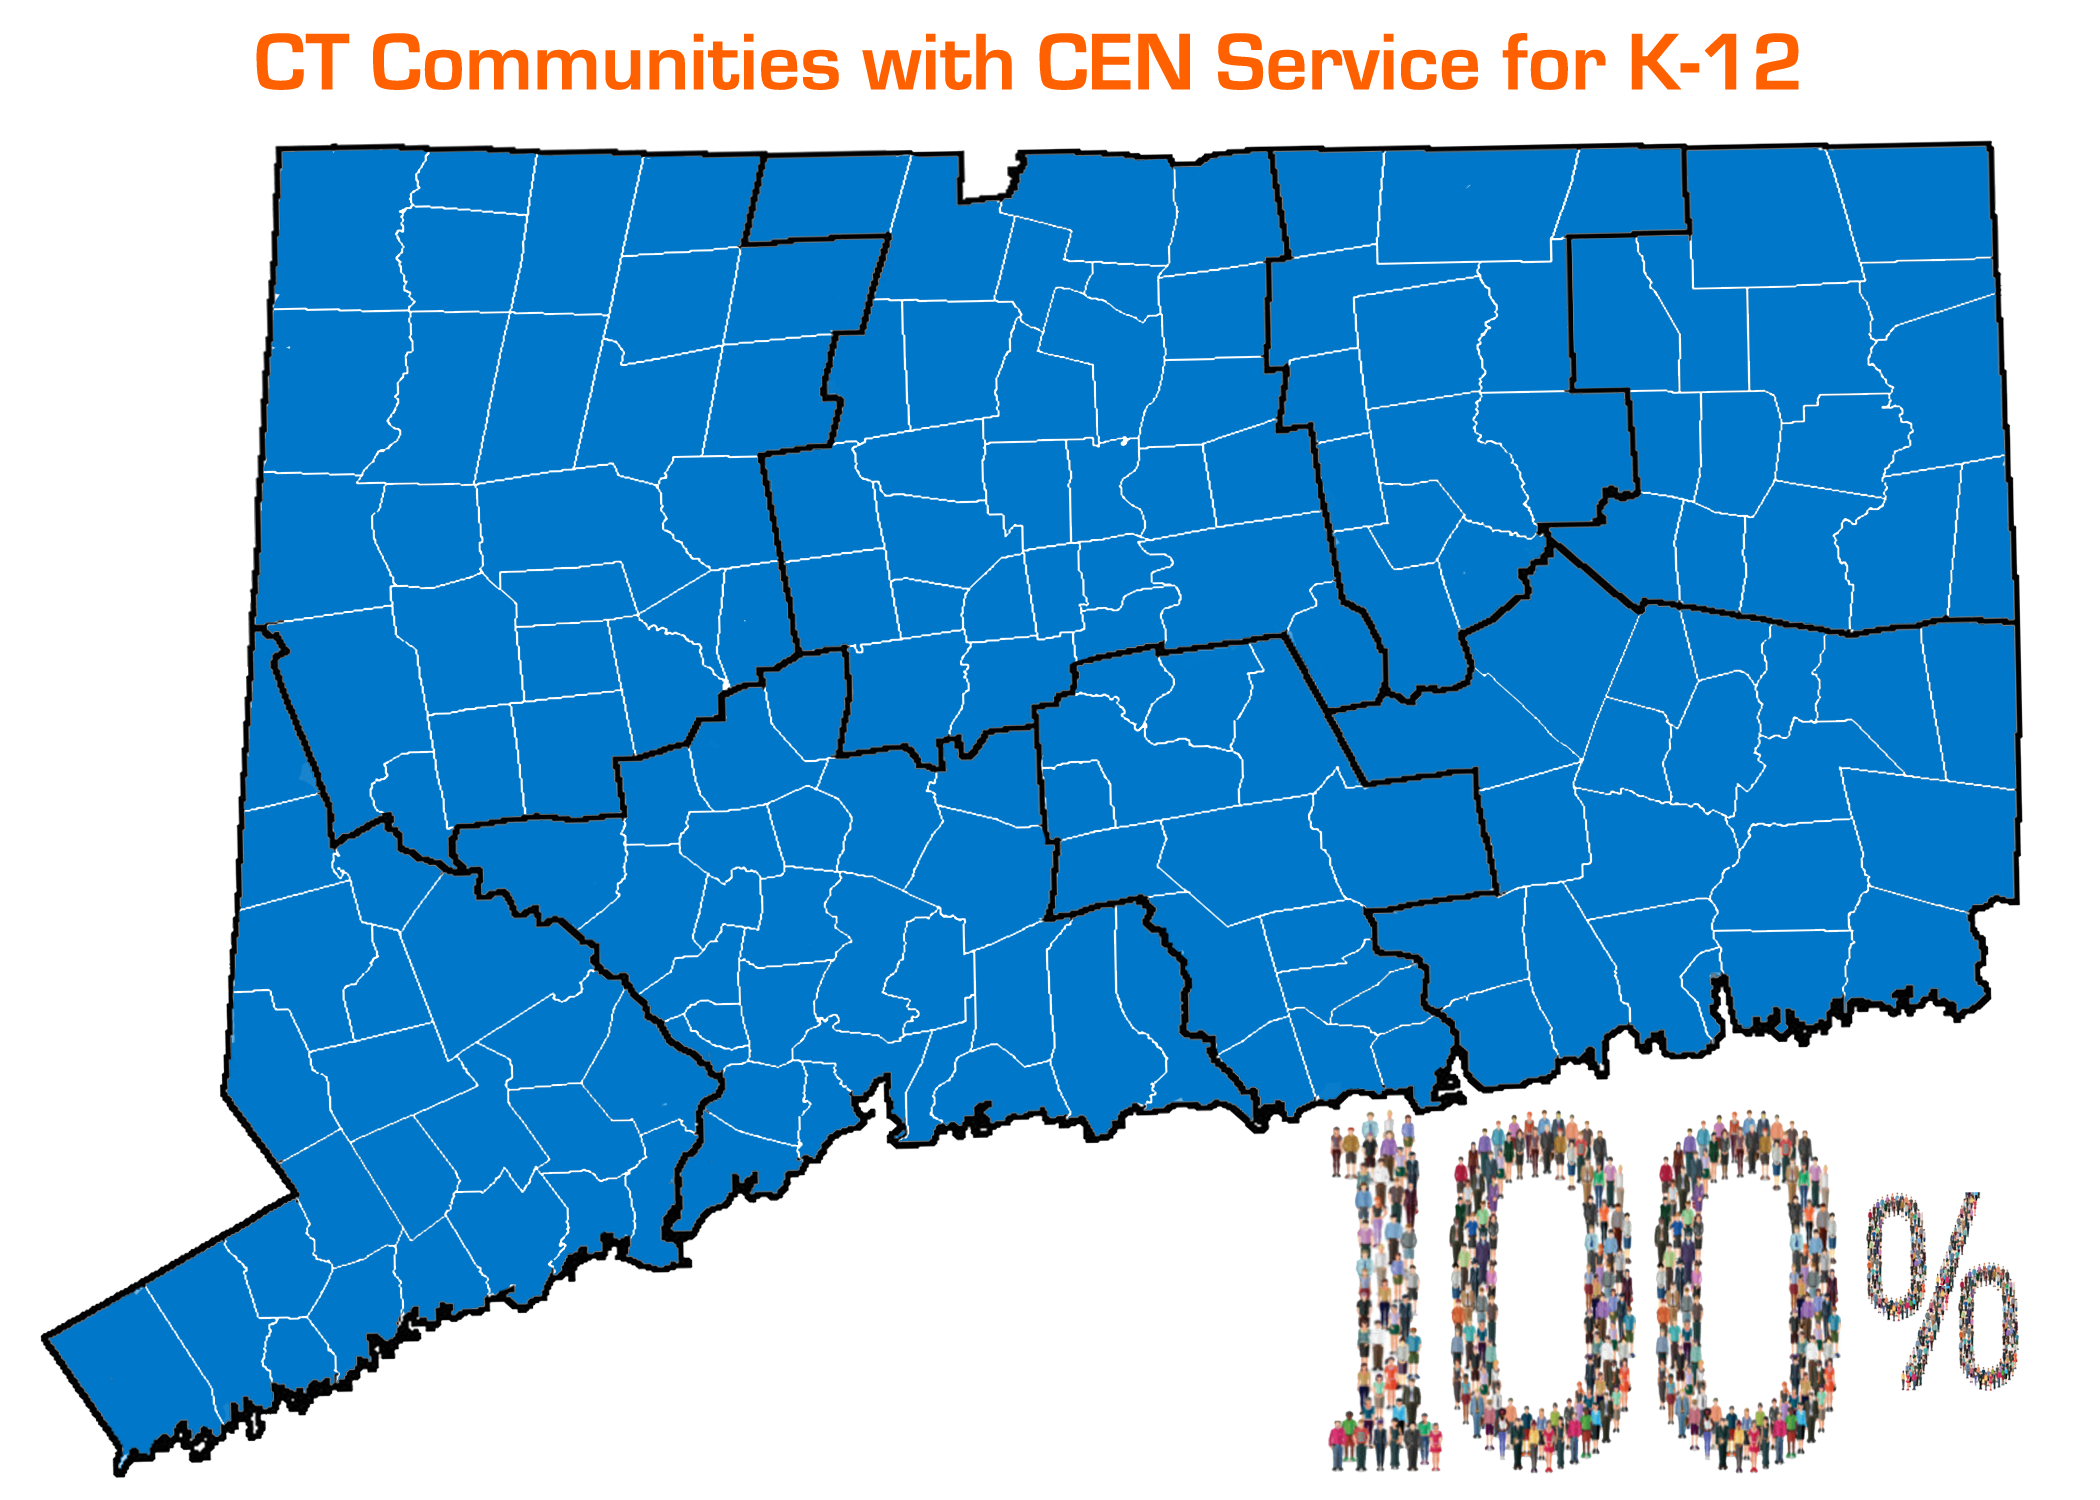 Map of CT partially shaded blue, above map reads: CT Communities with CEN Service for K-12, below map reads: 100%